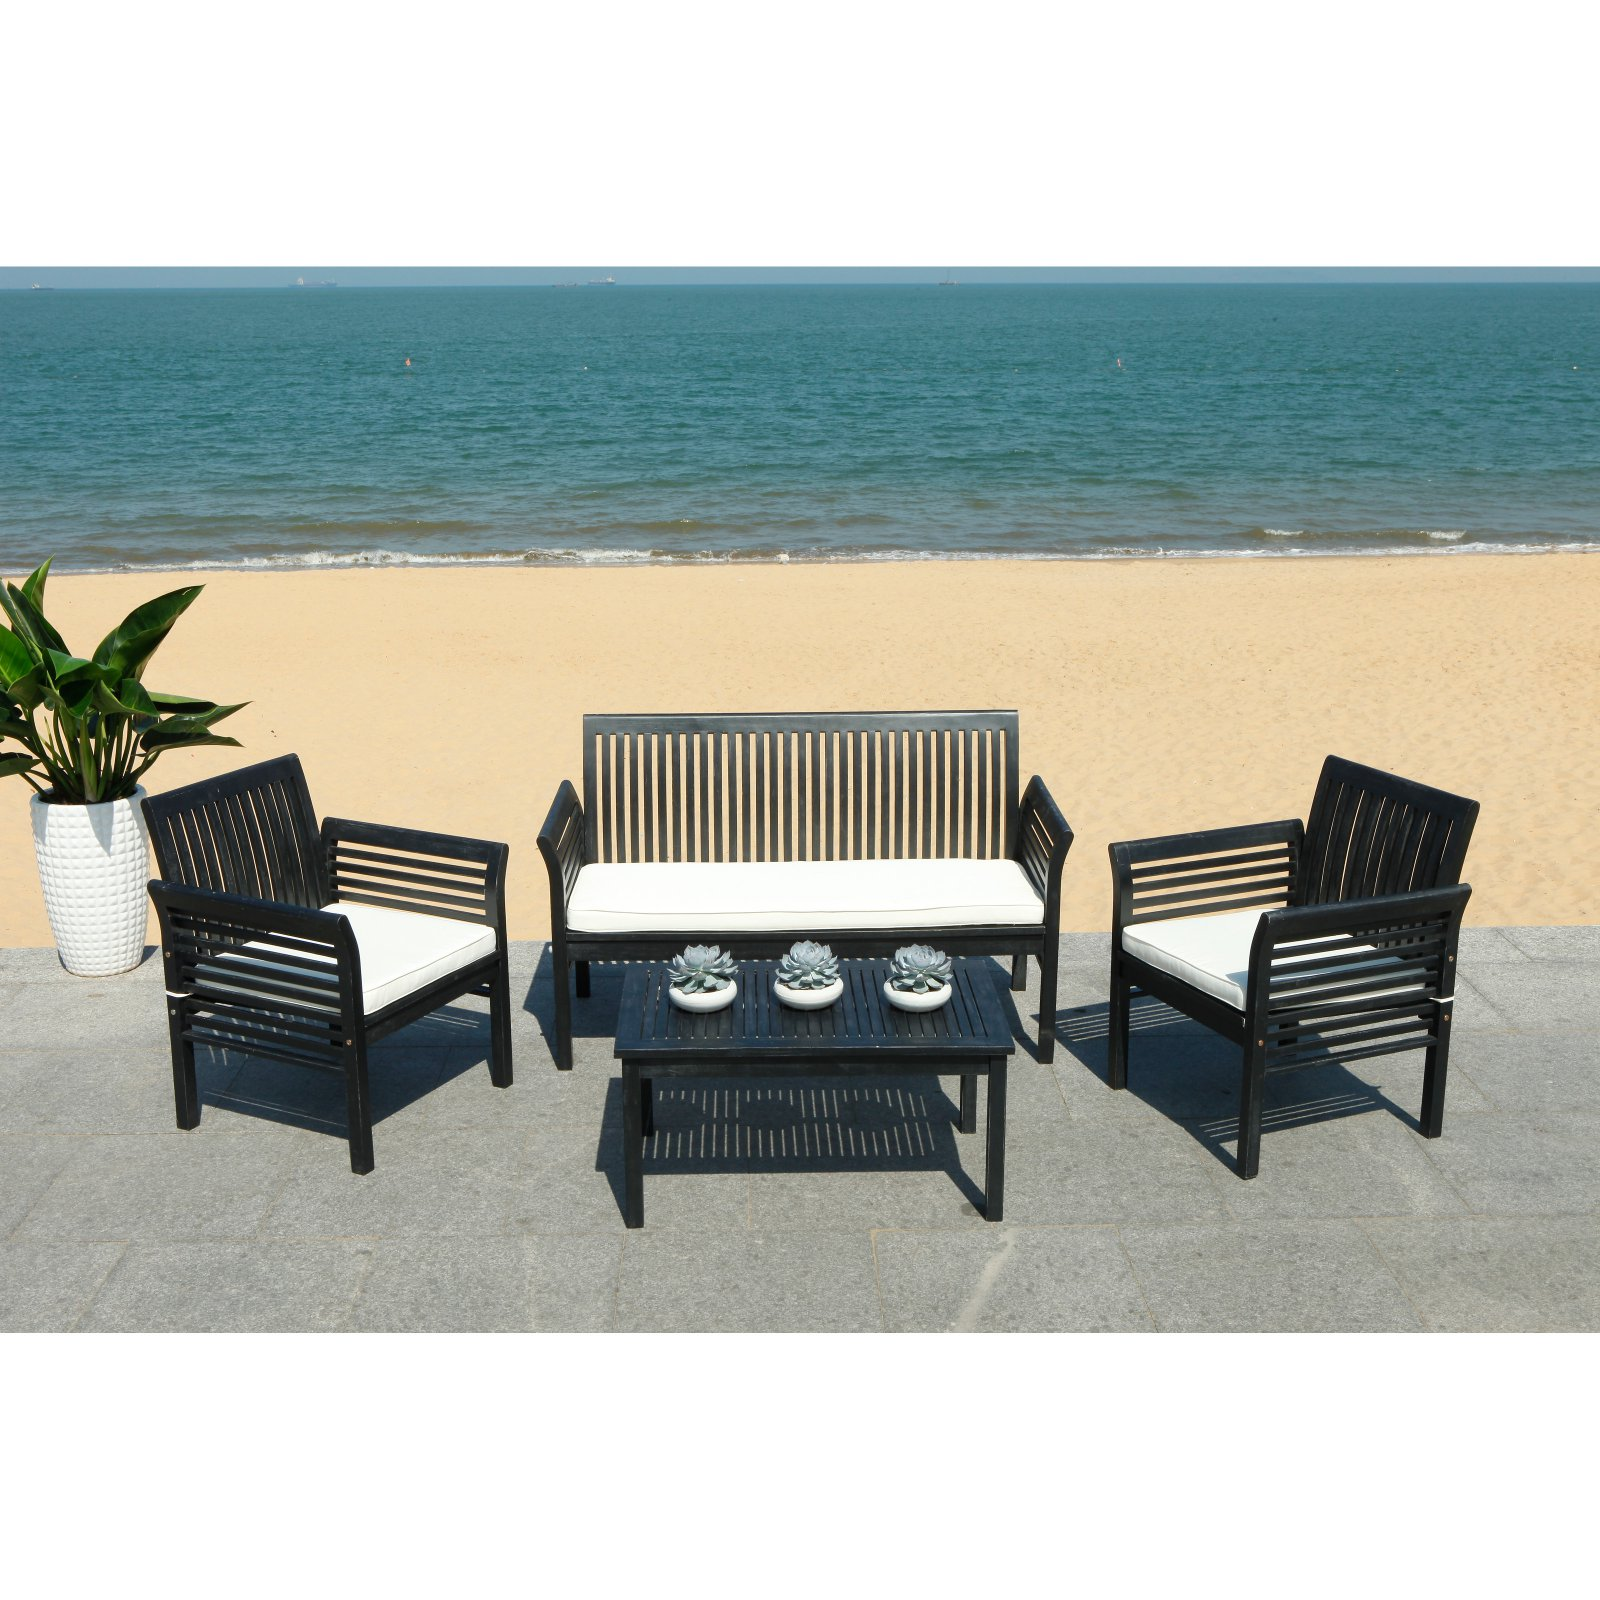 Safavieh Rocklin Outdoor Contemporary 4 Piece Living Set with Cushion